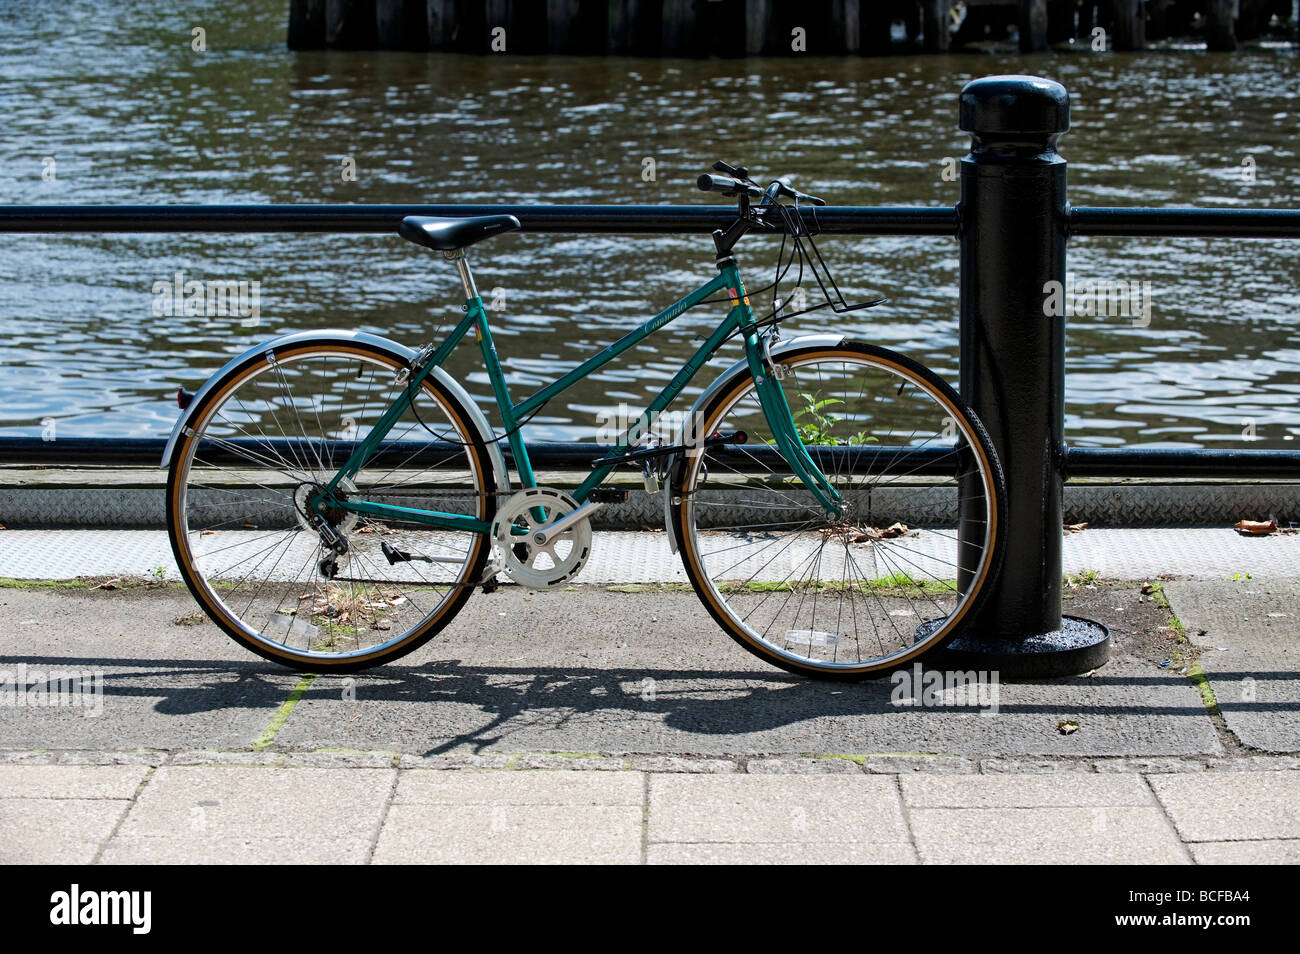 Bicycle chained to railing on Quayside, Newcastle-upon-Tyne - Stock Image